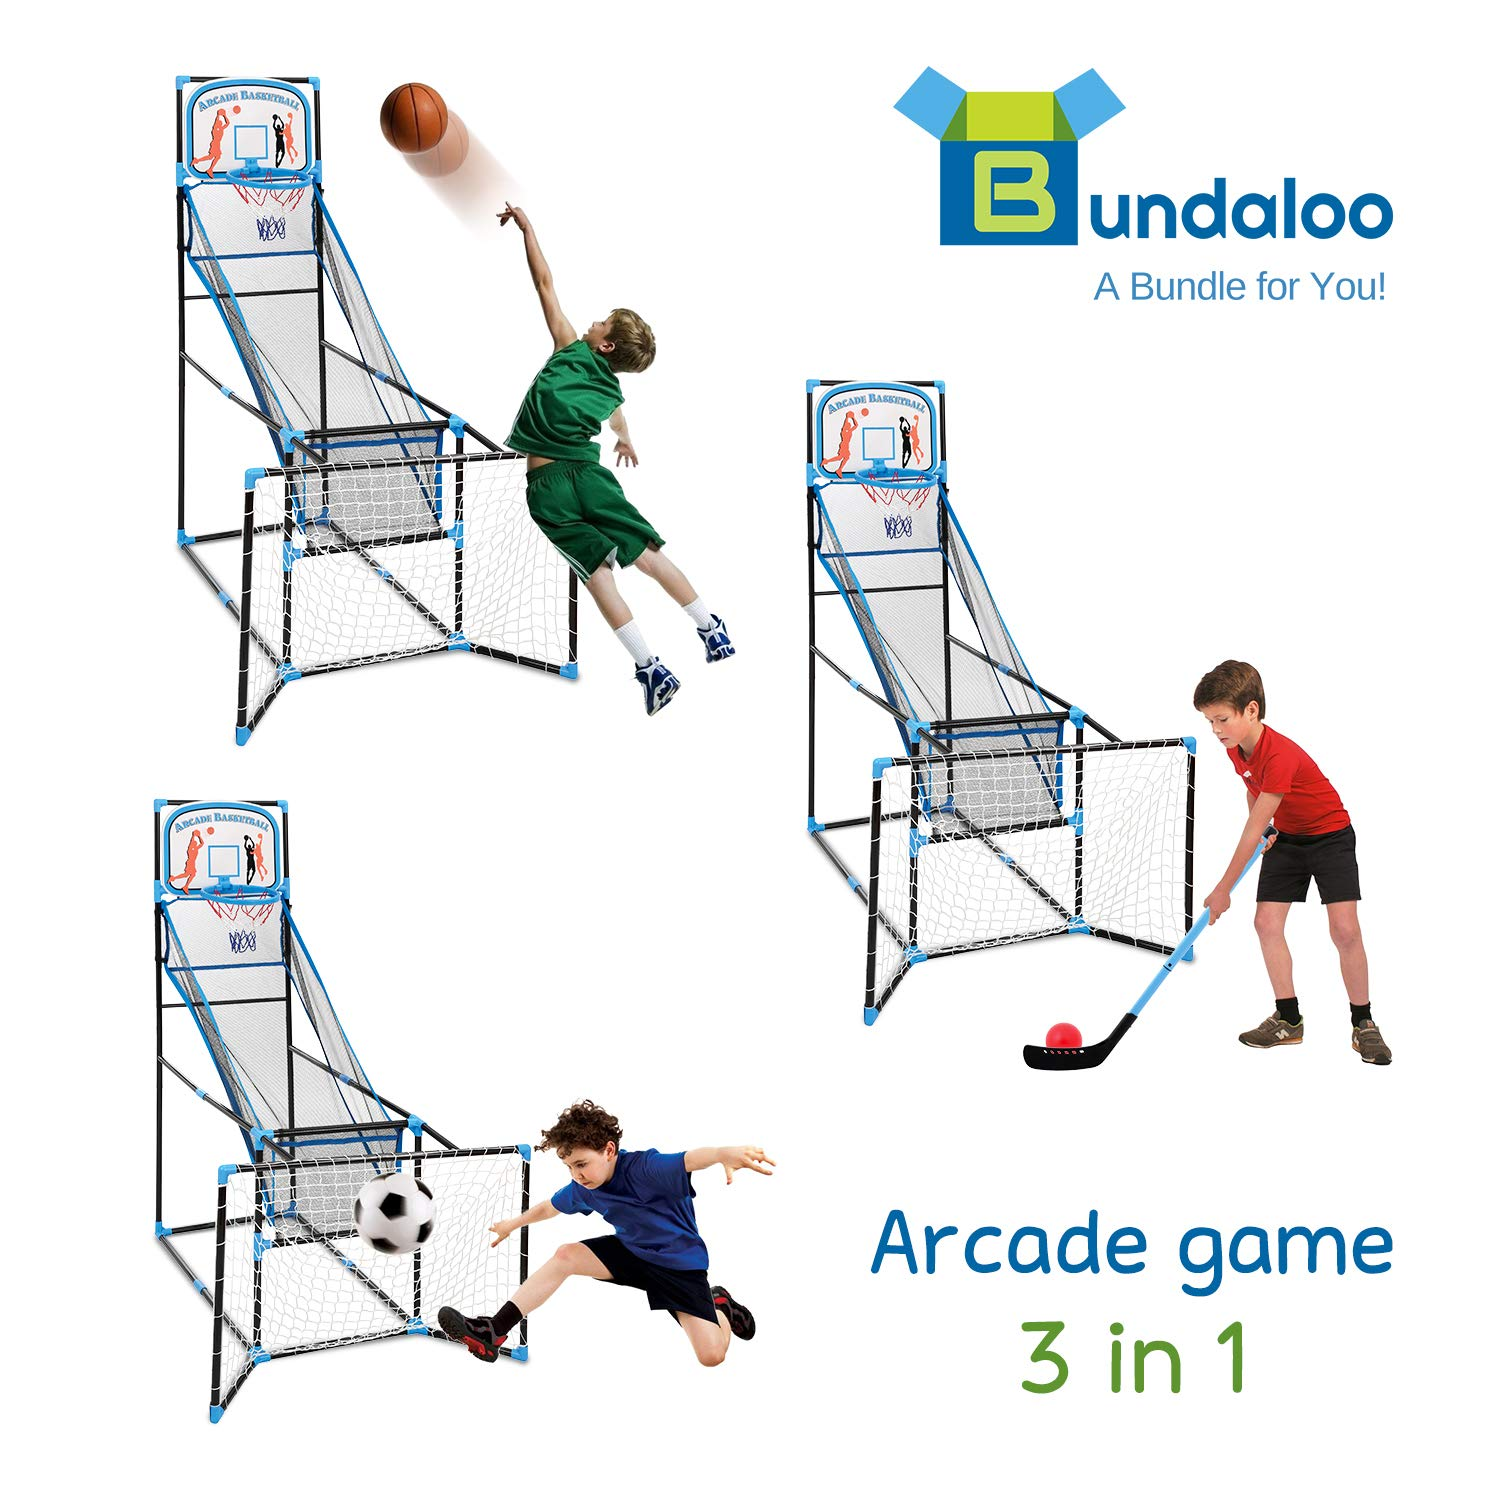 Bundaloo 3 in 1 Arcade Game | Basketball, Soccer, and Hockey Kids Toys | Fun Outdoor and Indoor Ball Games for Boys, Girls, Toddler | Includes 3 Balls, Backboard Hoop, Net Goal, Stick, and Air Pump by Bundaloo (Image #3)